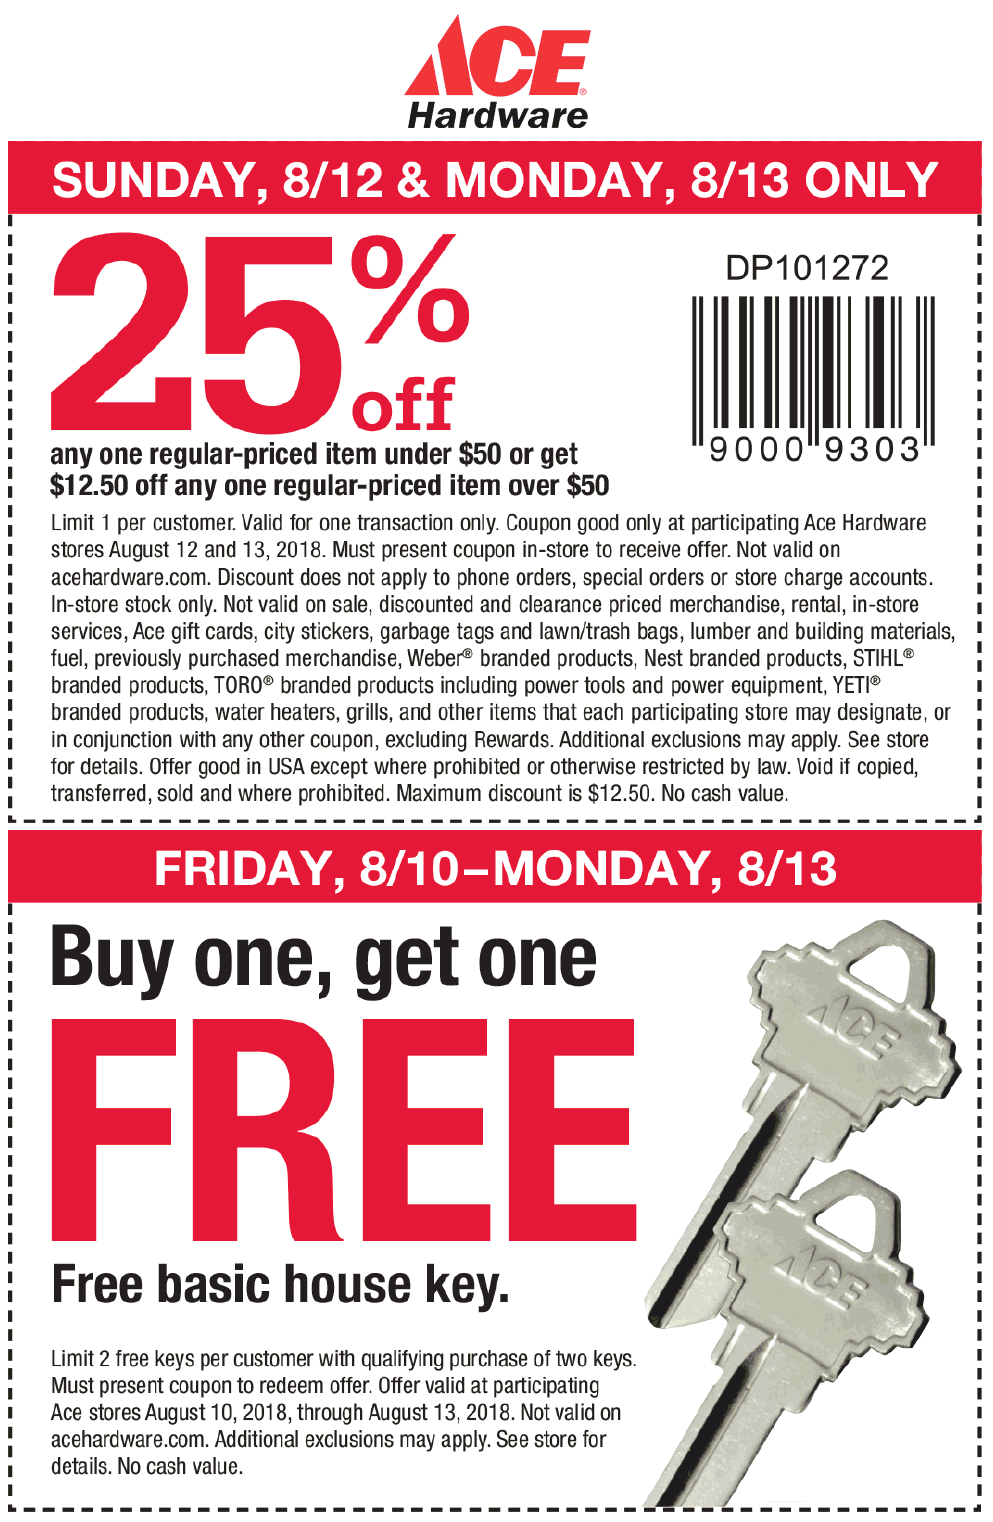 Ace Hardware Coupon October 2019 25% off a single item & more at Ace Hardware